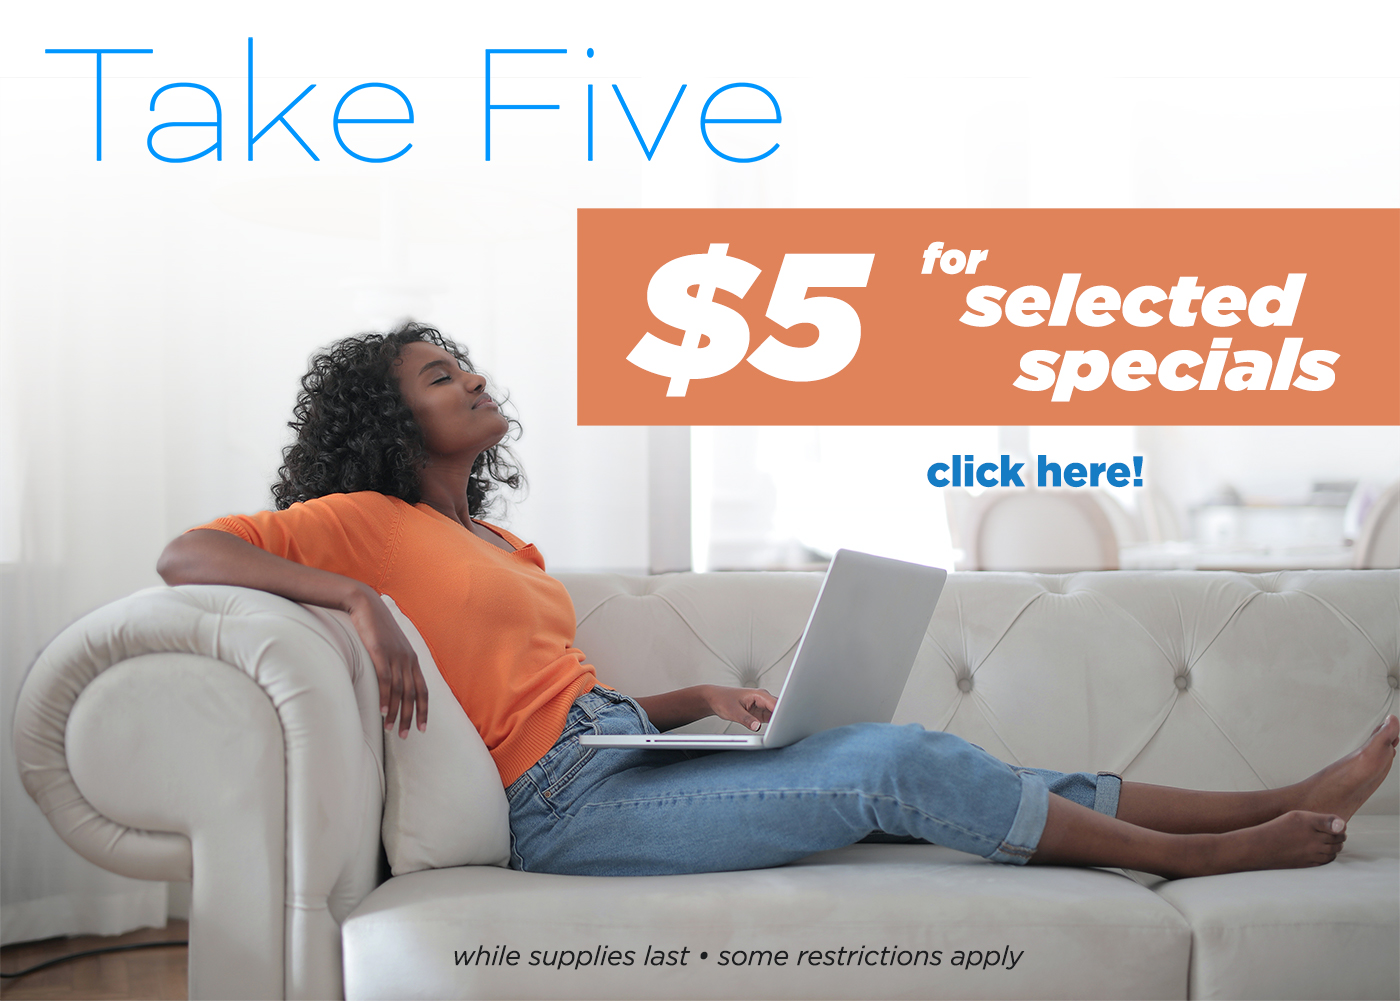 $5 for selected specials!